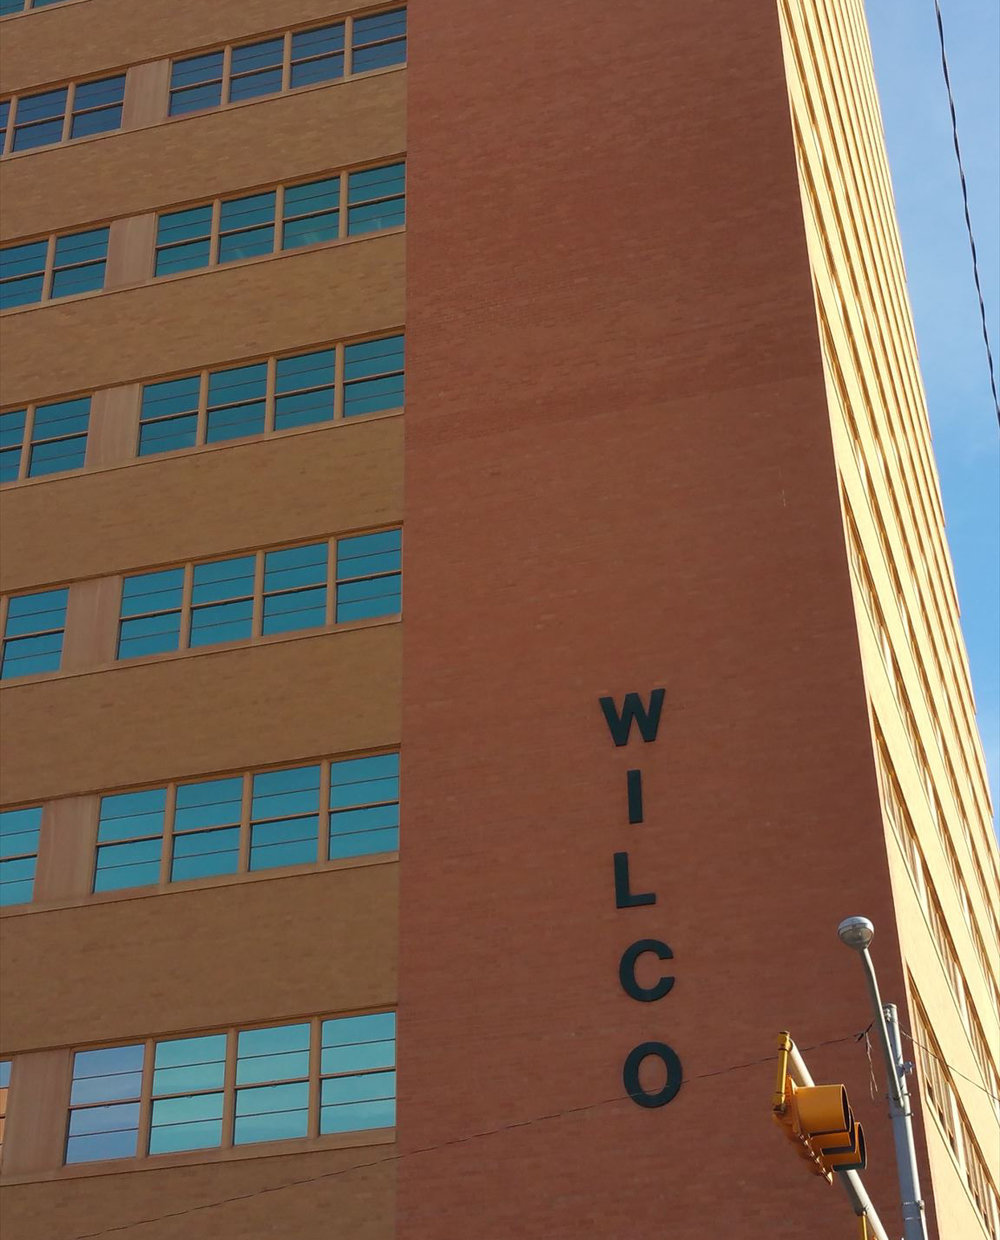 Stair Climb - Wilco Tower (Downtown Midland)September 7, 2019